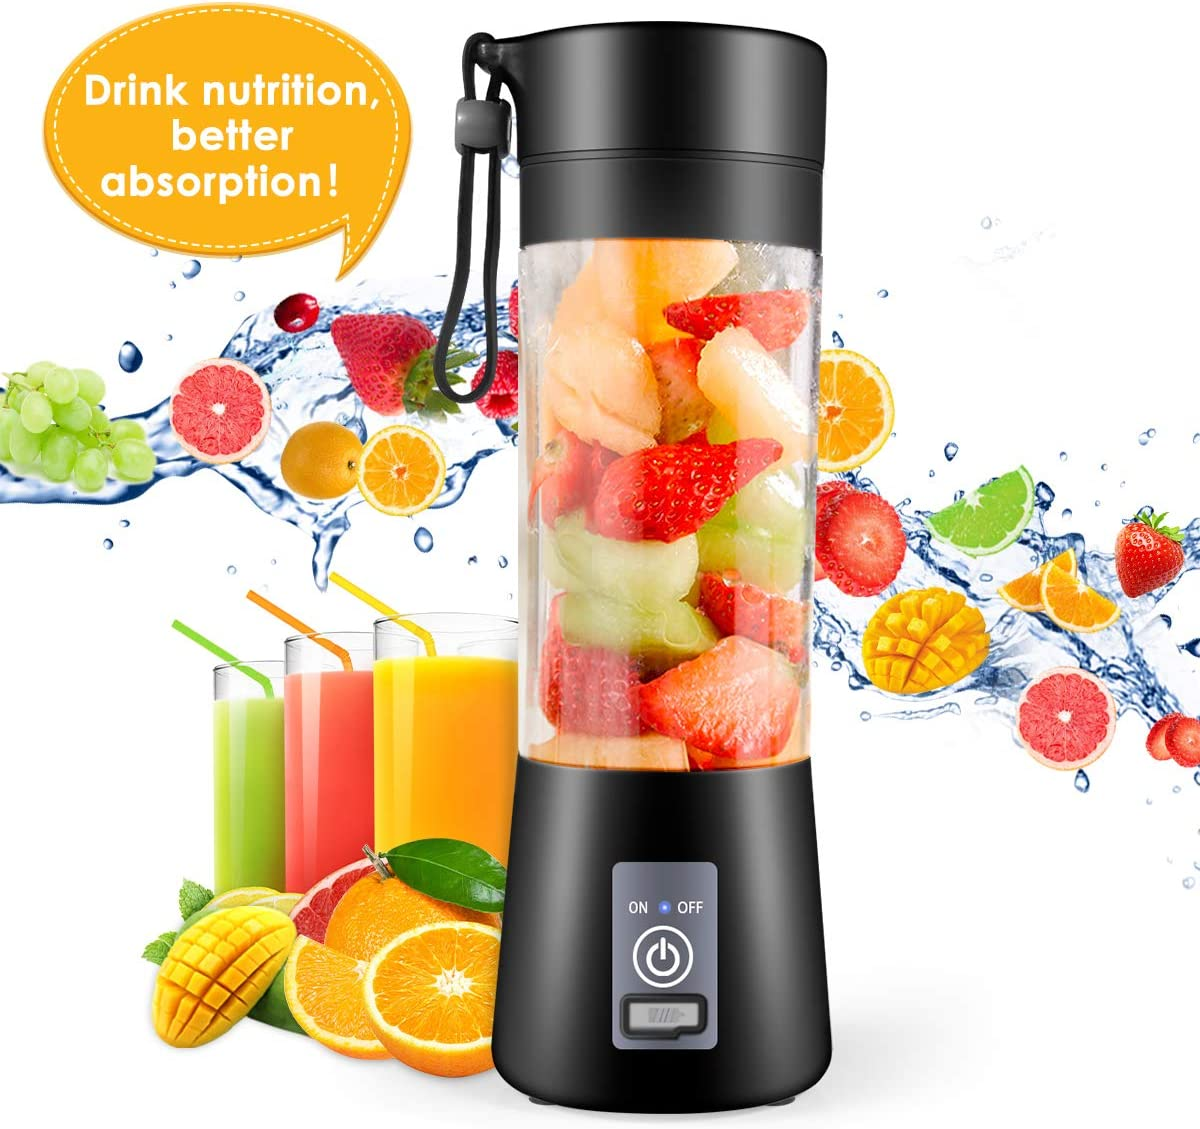 Portable Blender, Mini Mixer for smoothies and shakes, Kitchen tools,Fruit Mixing Machine with USB Rechargeable Batteries